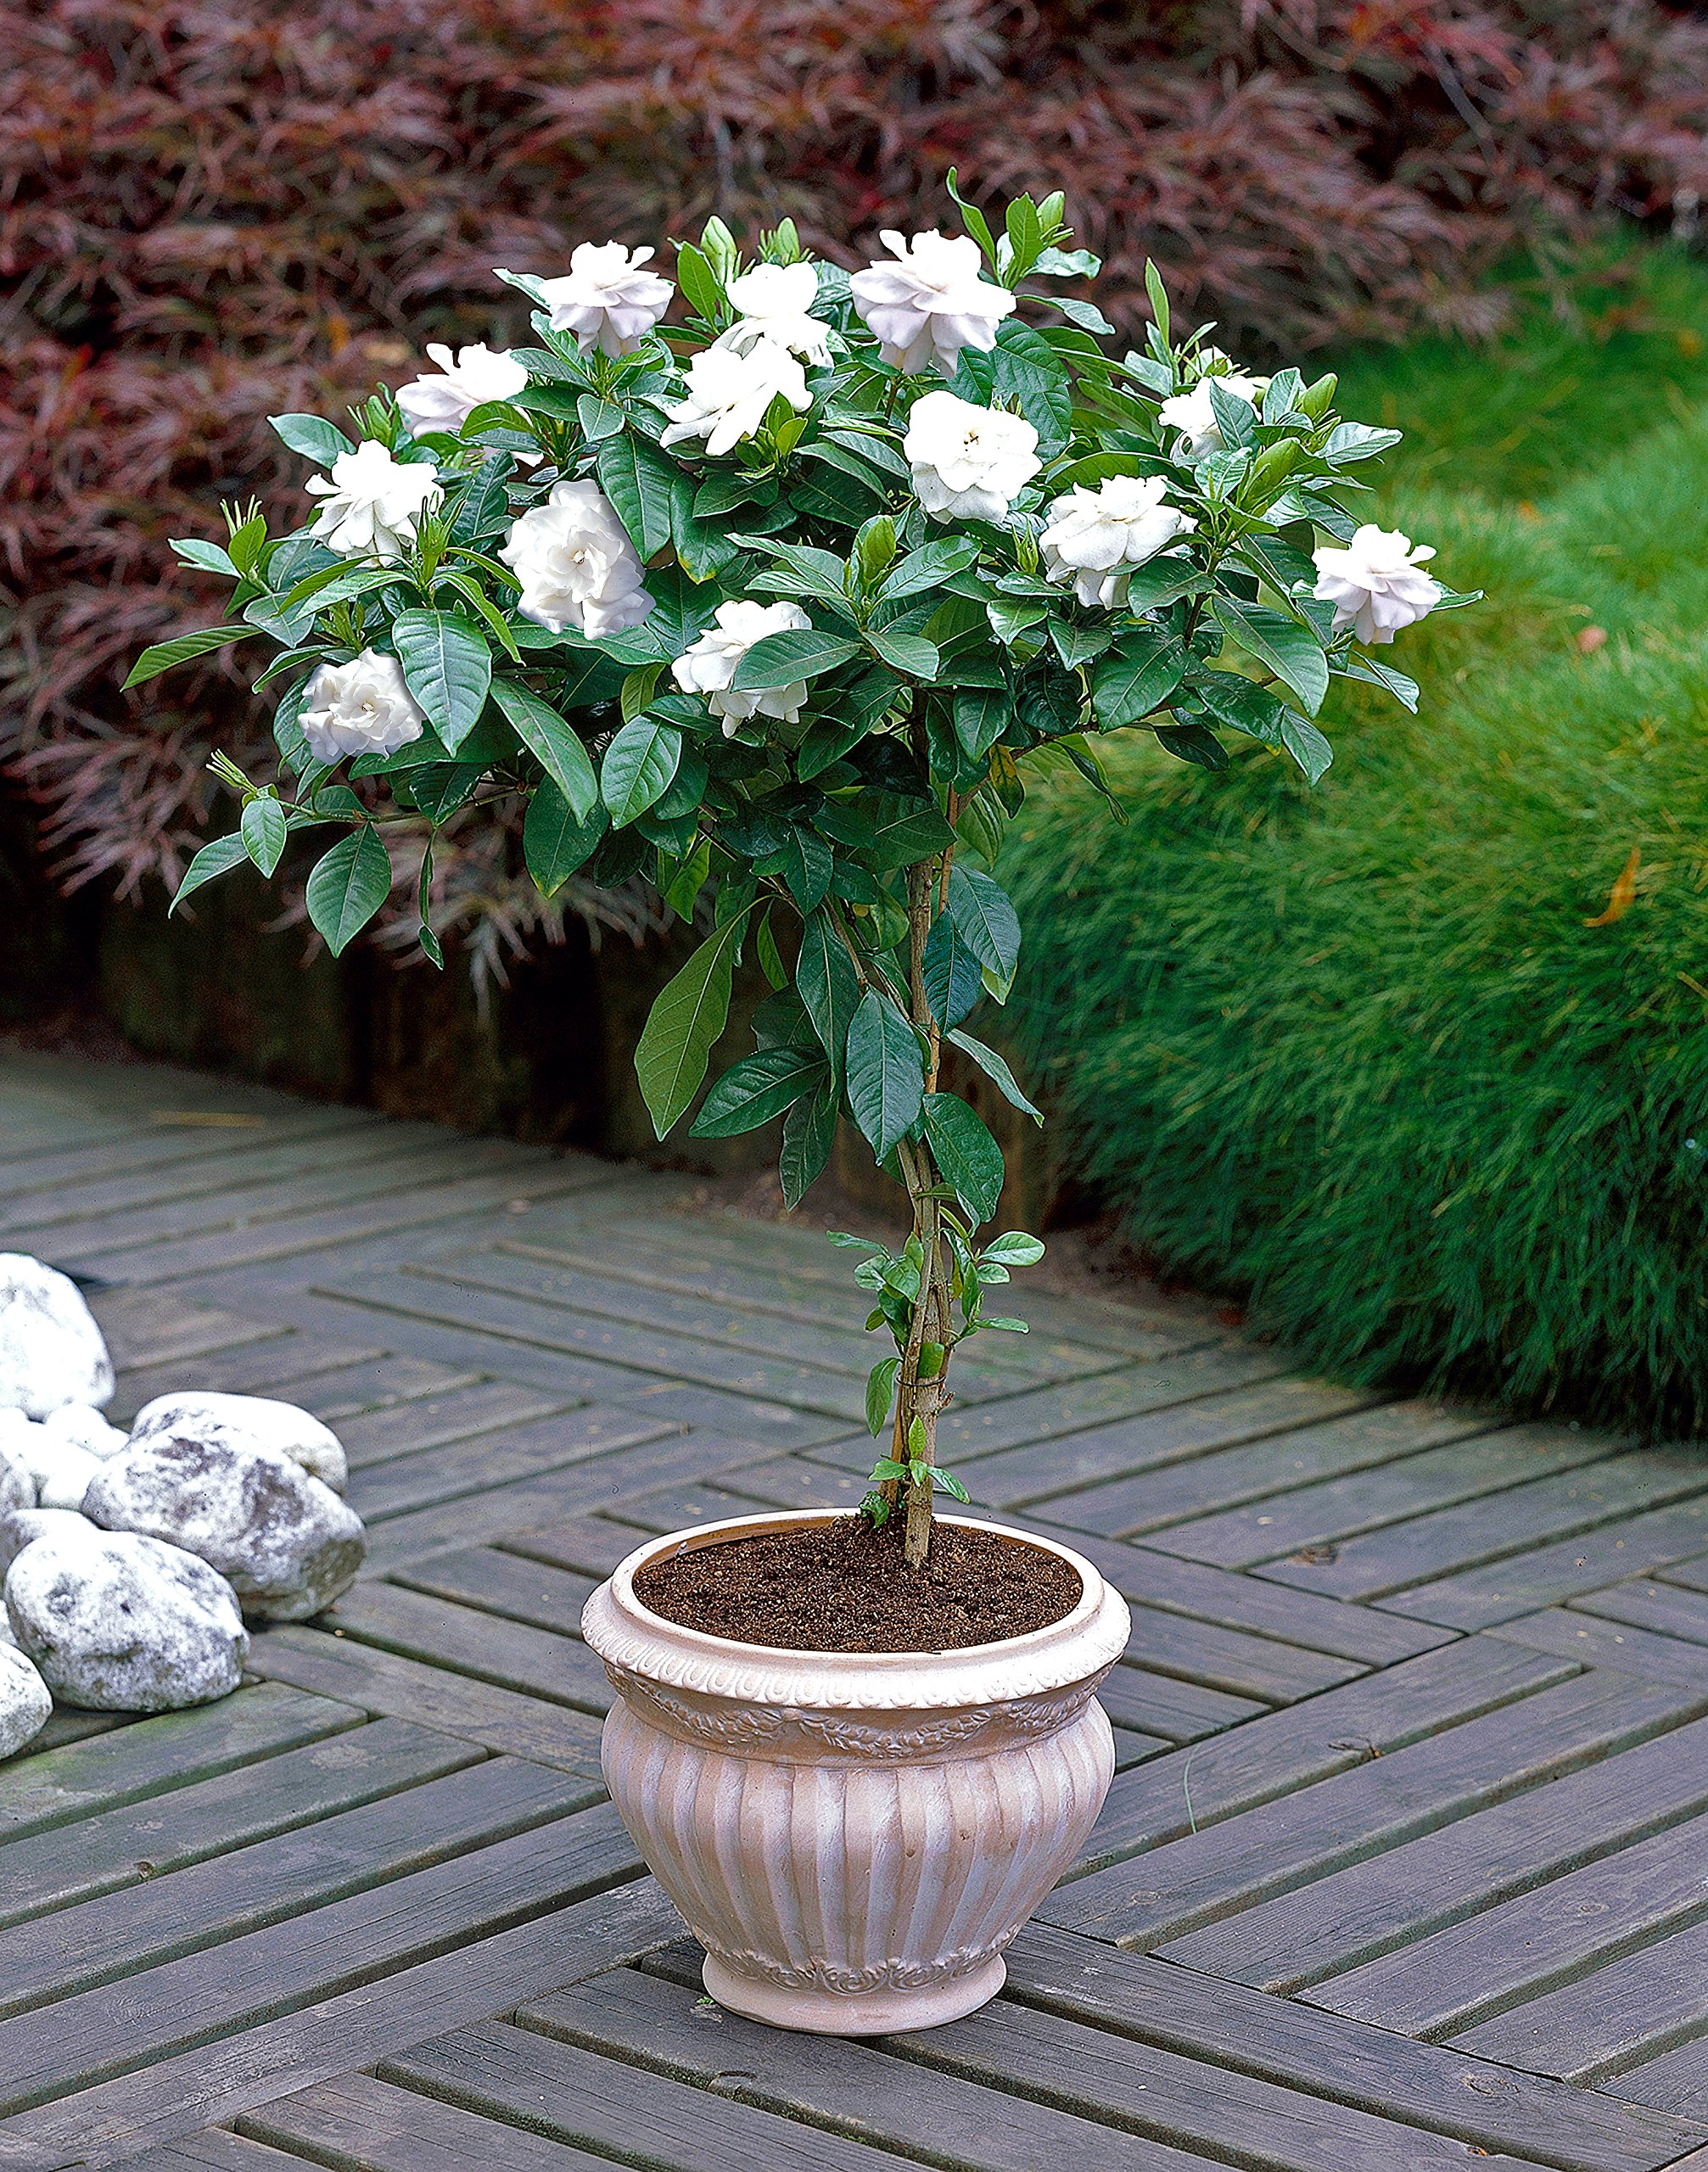 Double Blooming Gardenia Tree - Large Trees, Ready to Bloom 1st Year! - 3-4 ft. | No Shipping to AZ by Brighter Blooms (Image #2)